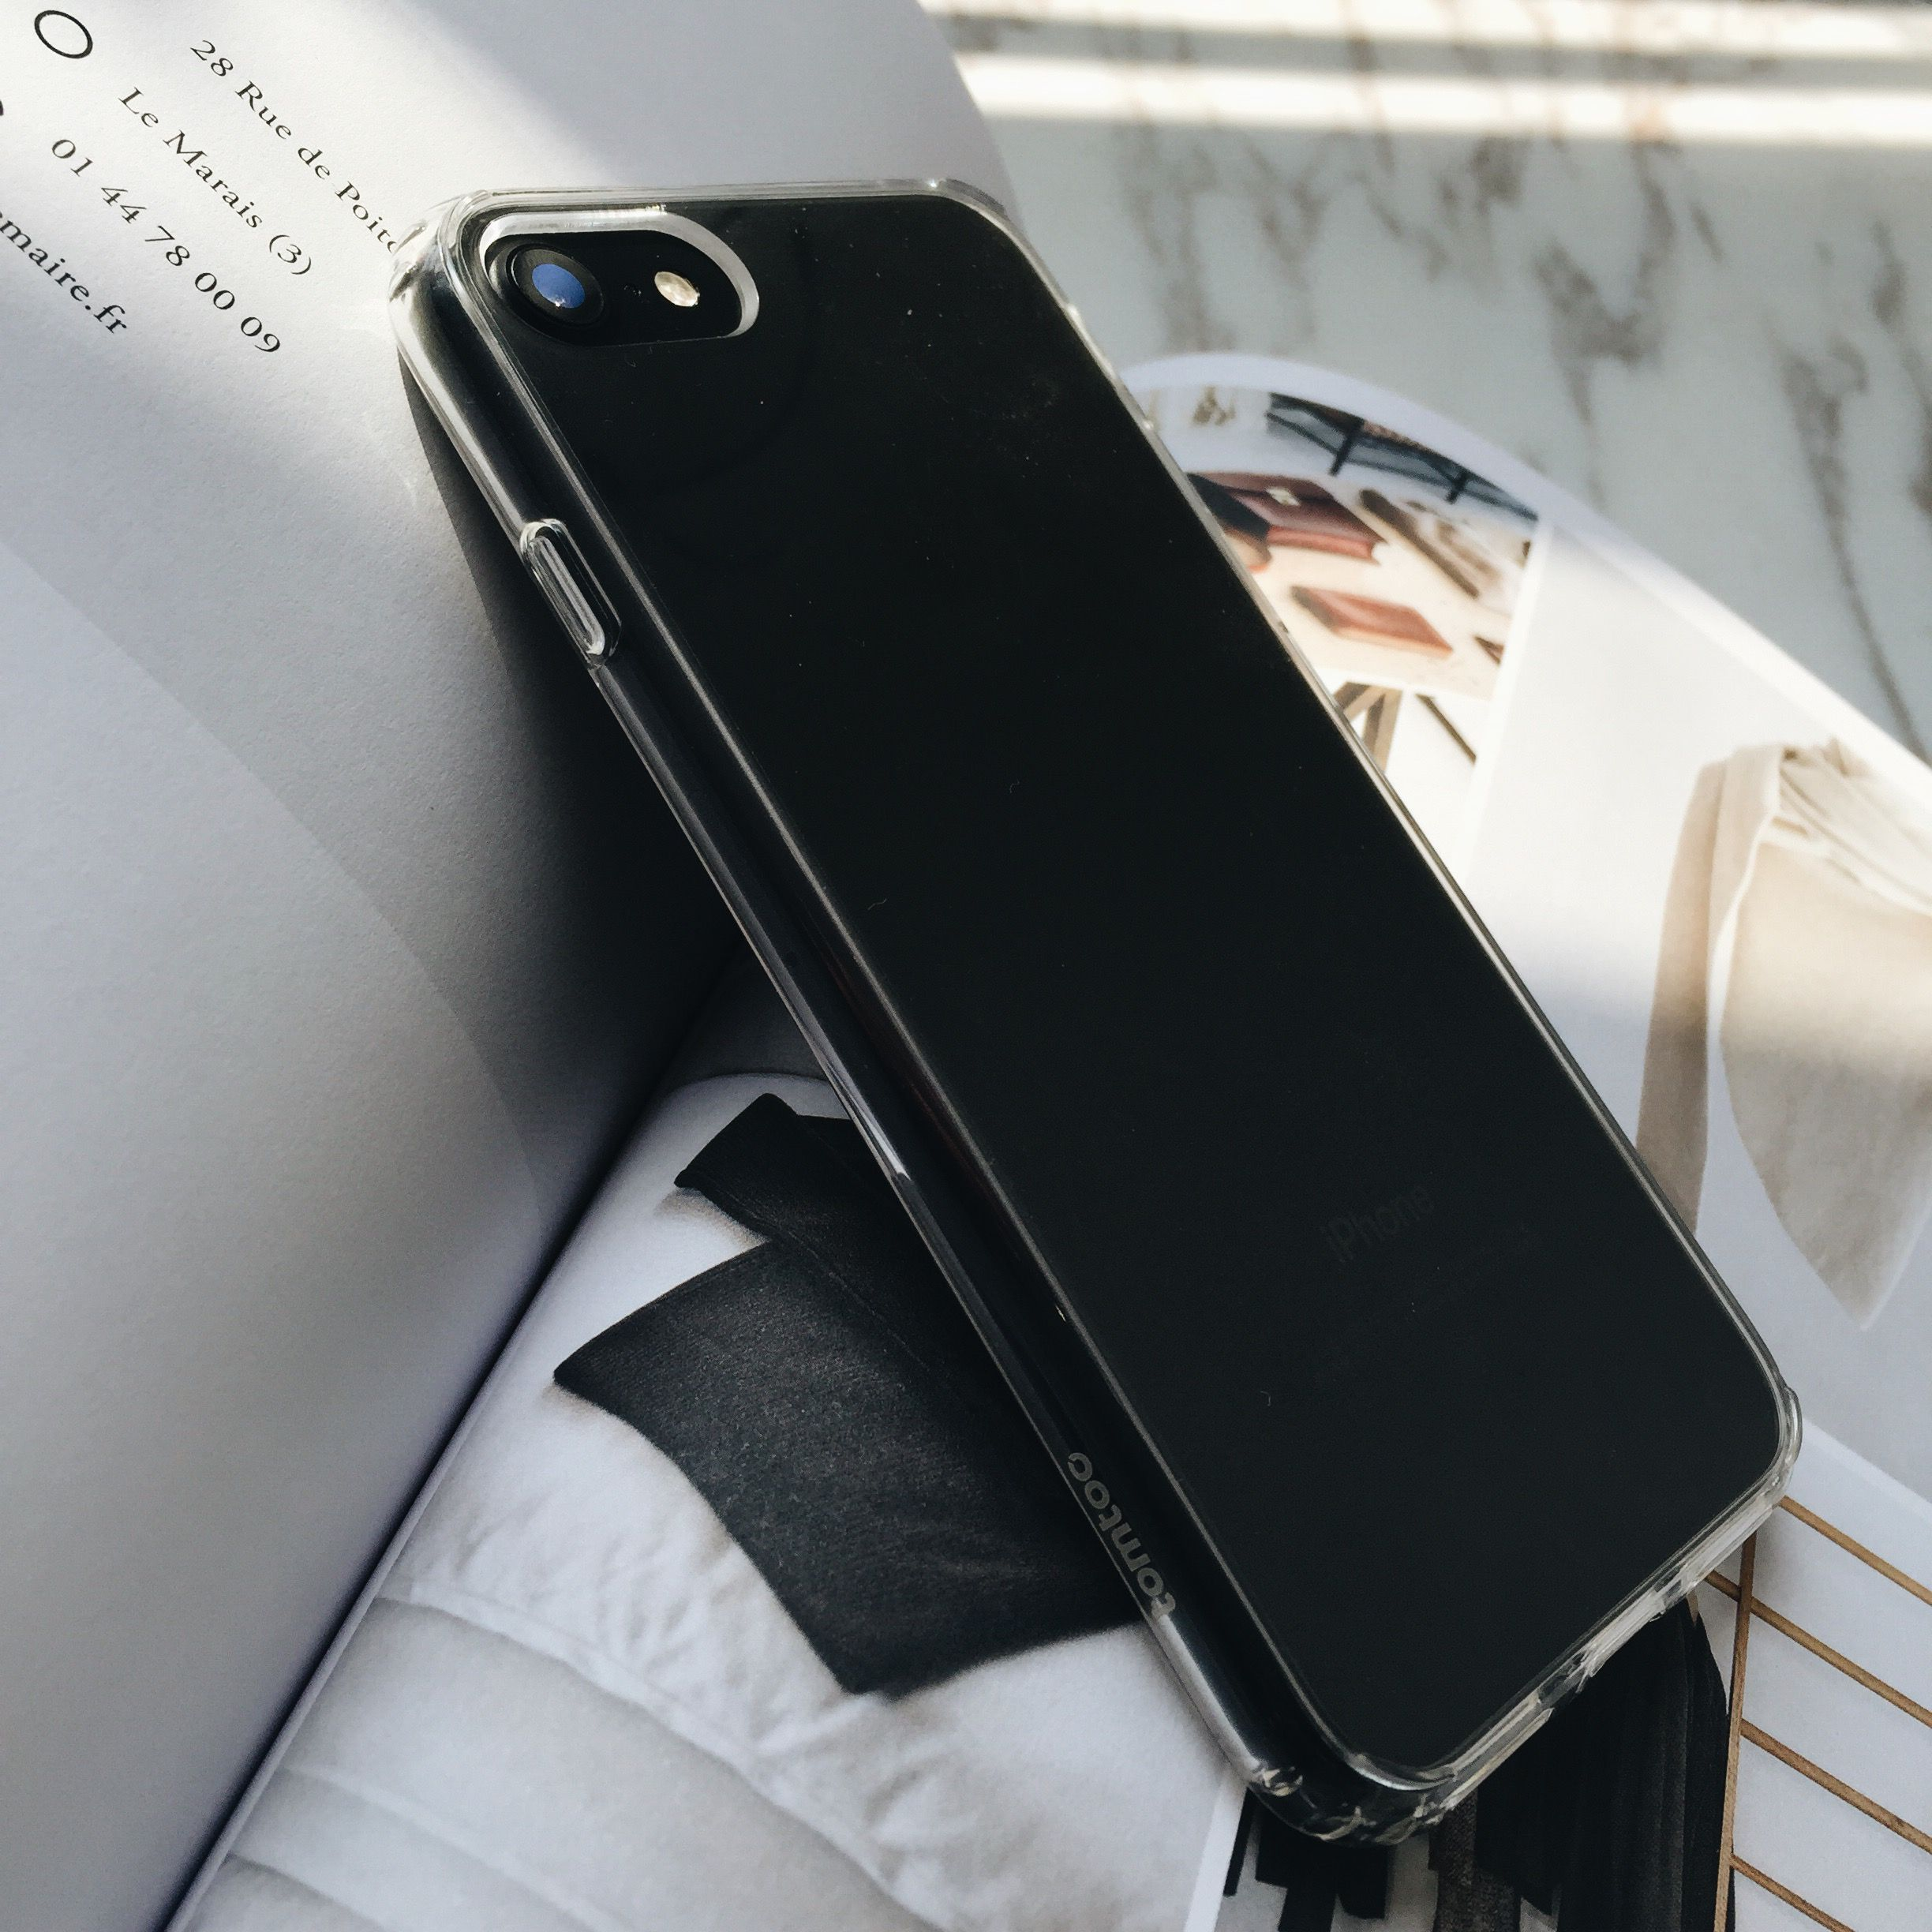 tomtoc iPhone 7 Crystal Clear Case! Like it? Then get it! #tomtoc #iphone7 #iphone7case #cellphonecase #iphone7cover